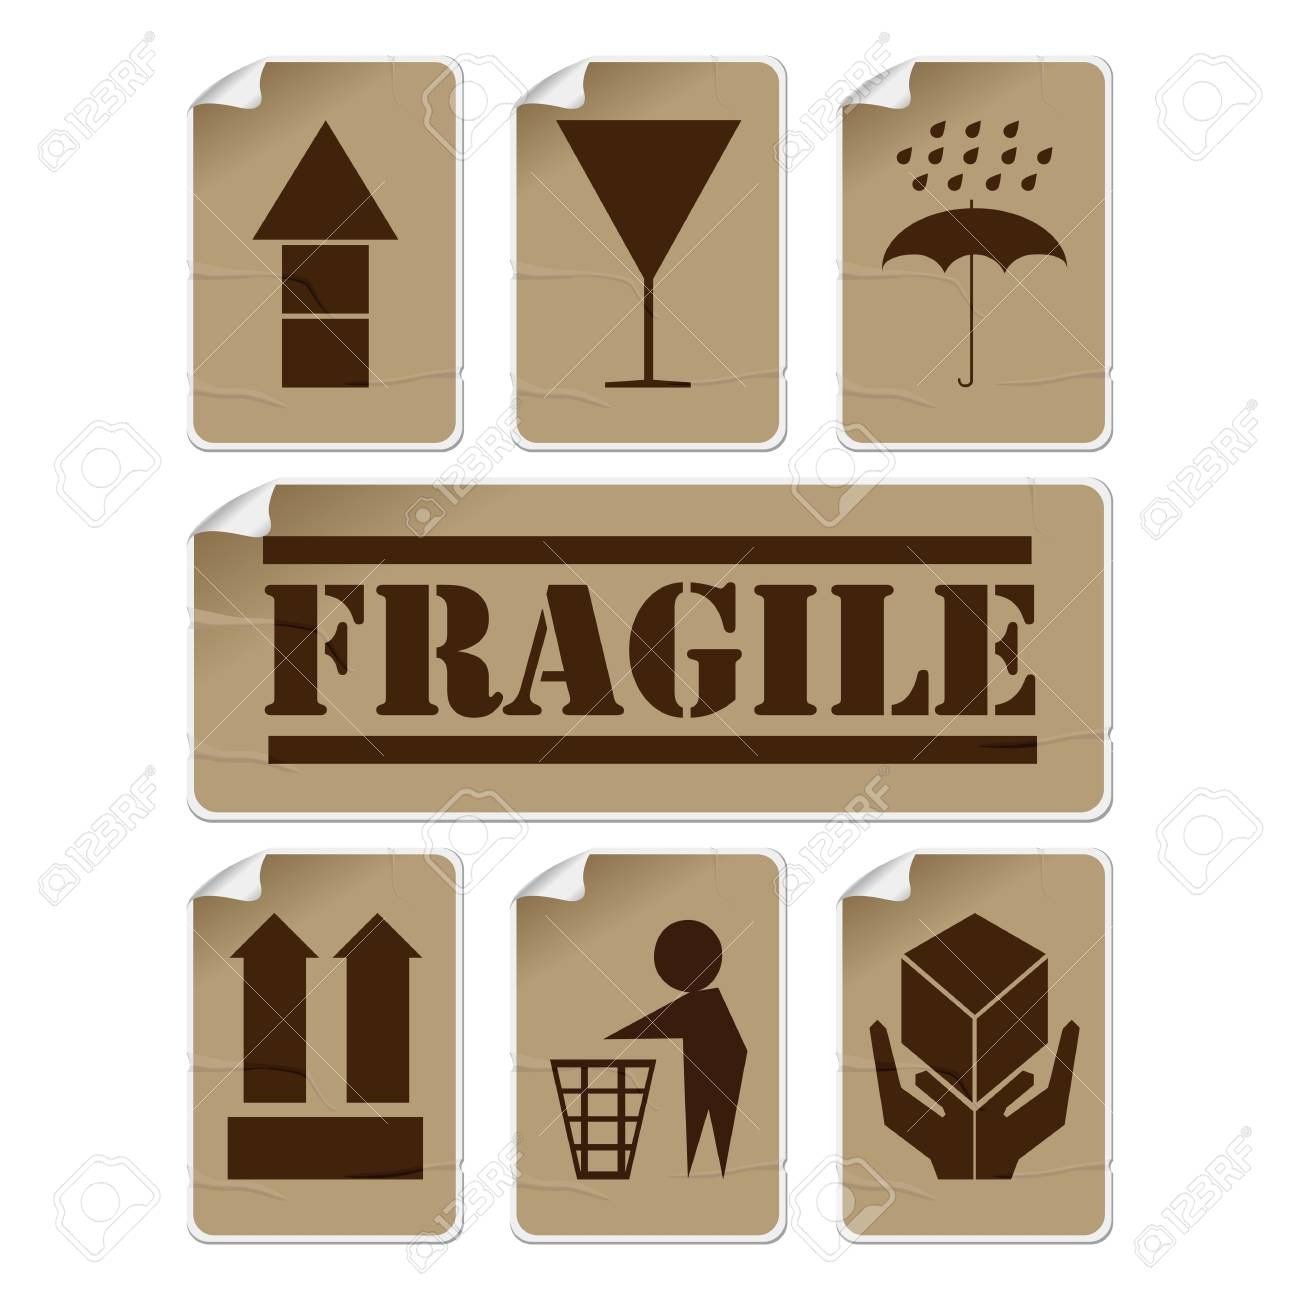 Fragile and safety badly glued stickers, isolated and grouped objects against white background Stock Vector - 9624890